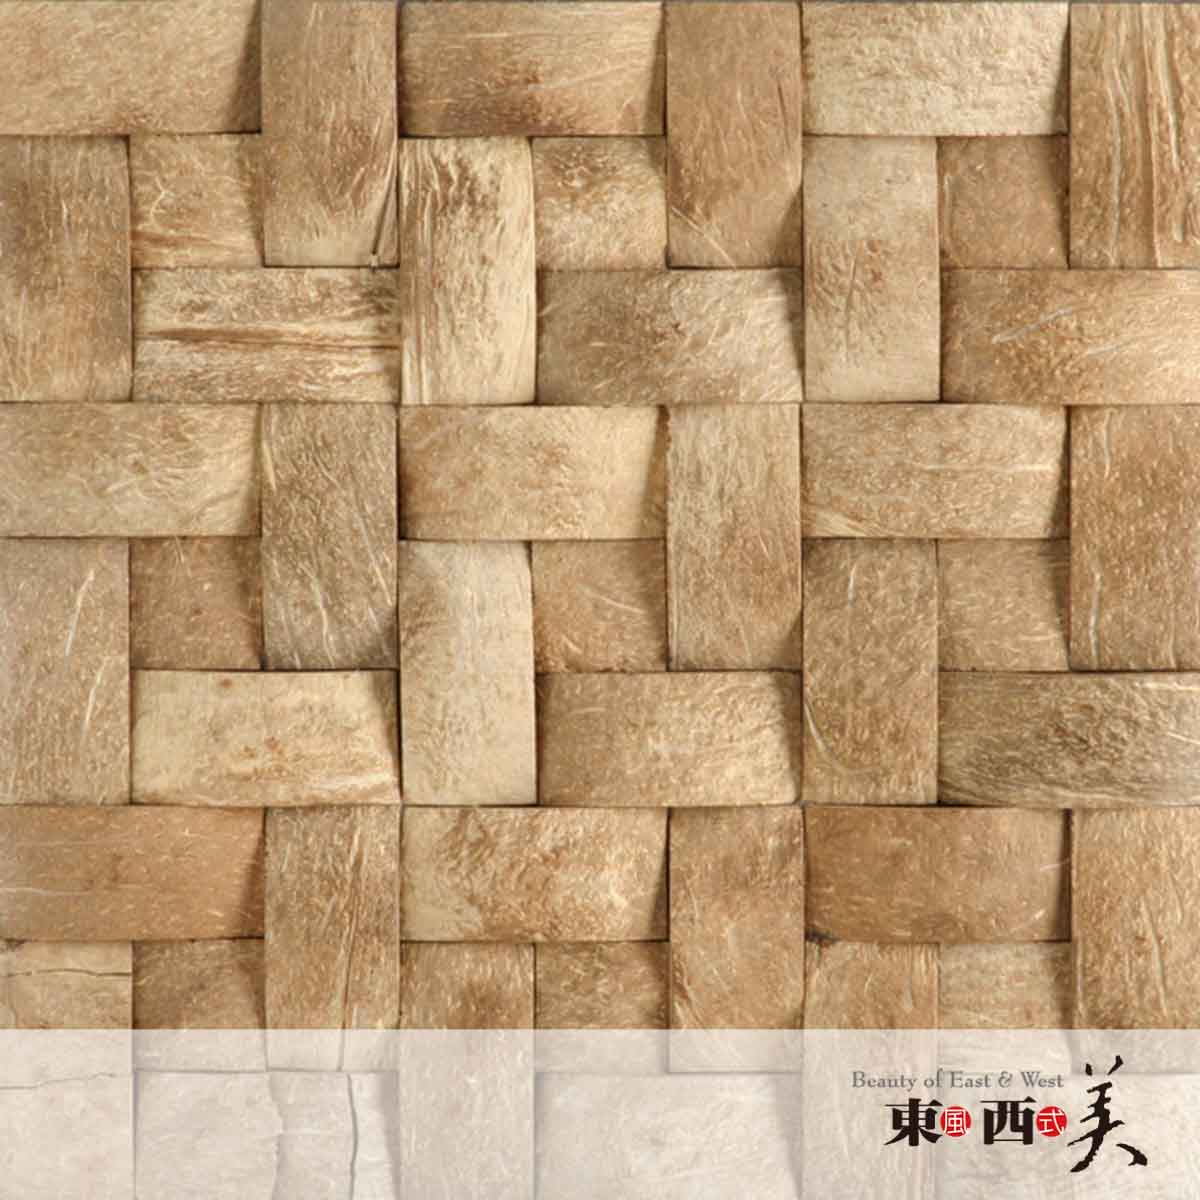 Brick Mosaic Coconut Shell Products for Sale